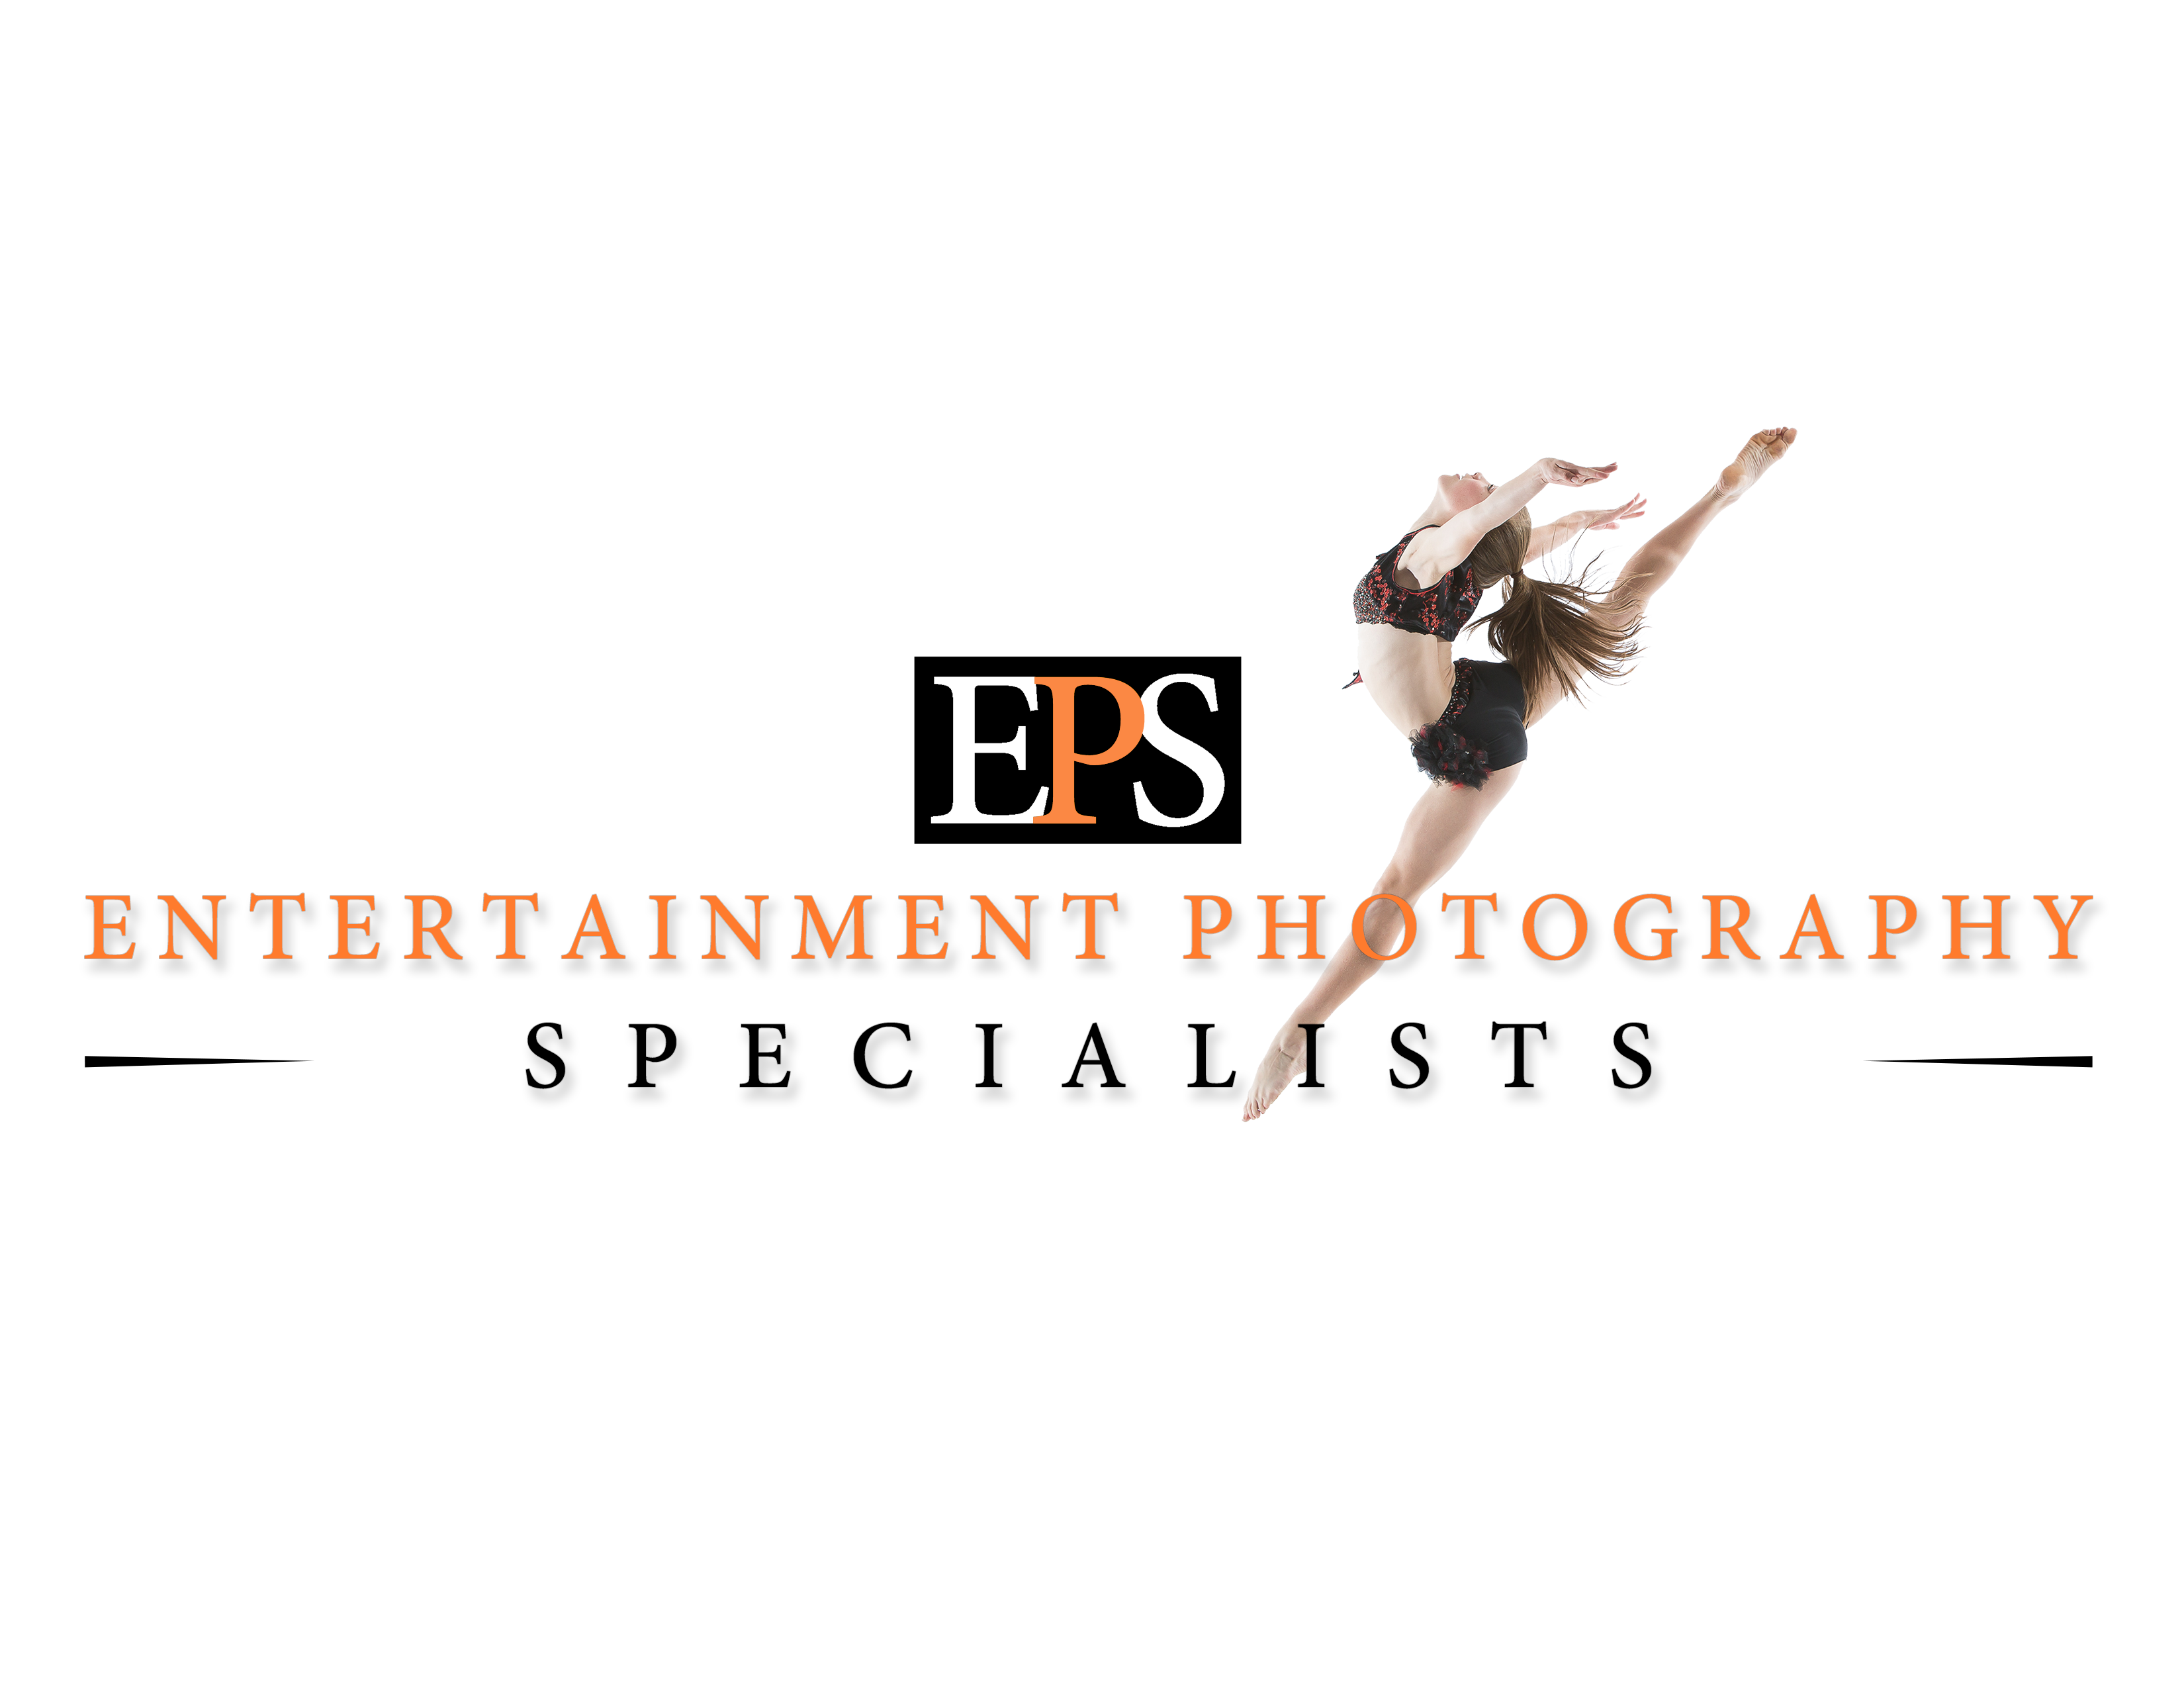 EPS - Entertainment Photography Specialists